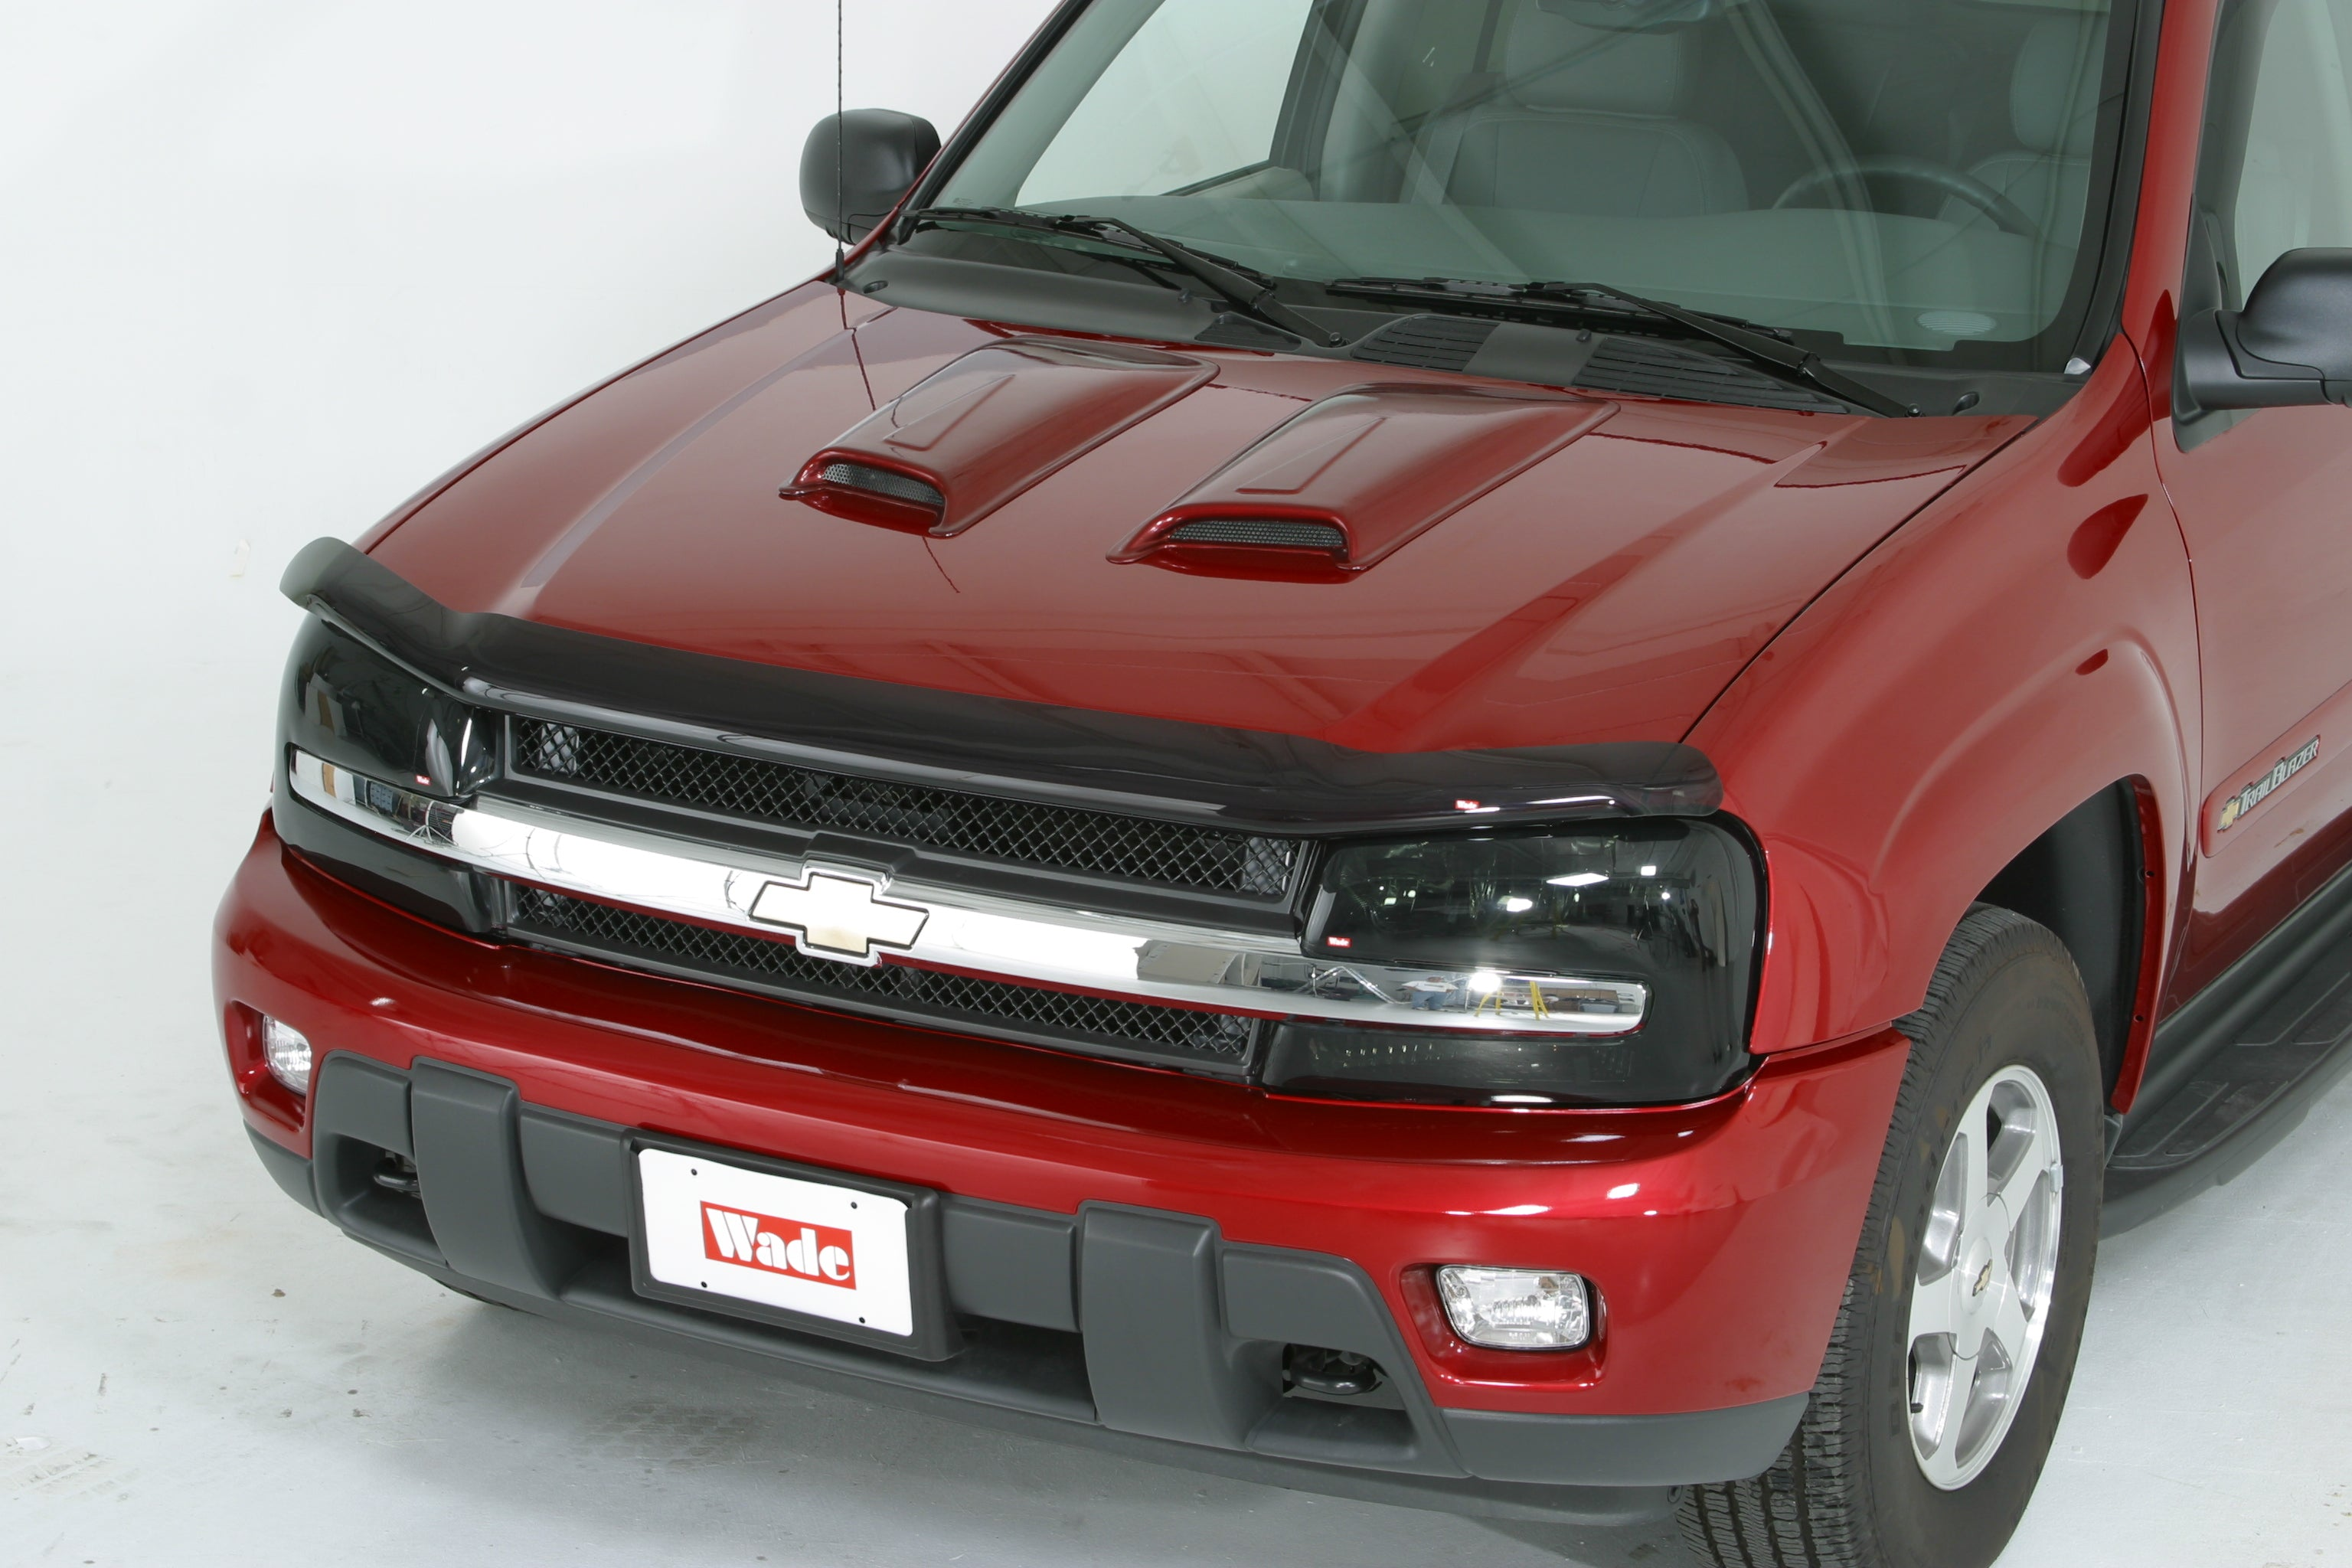 1997 Nissan Pickup 4WD (flush mount) Head Light Covers